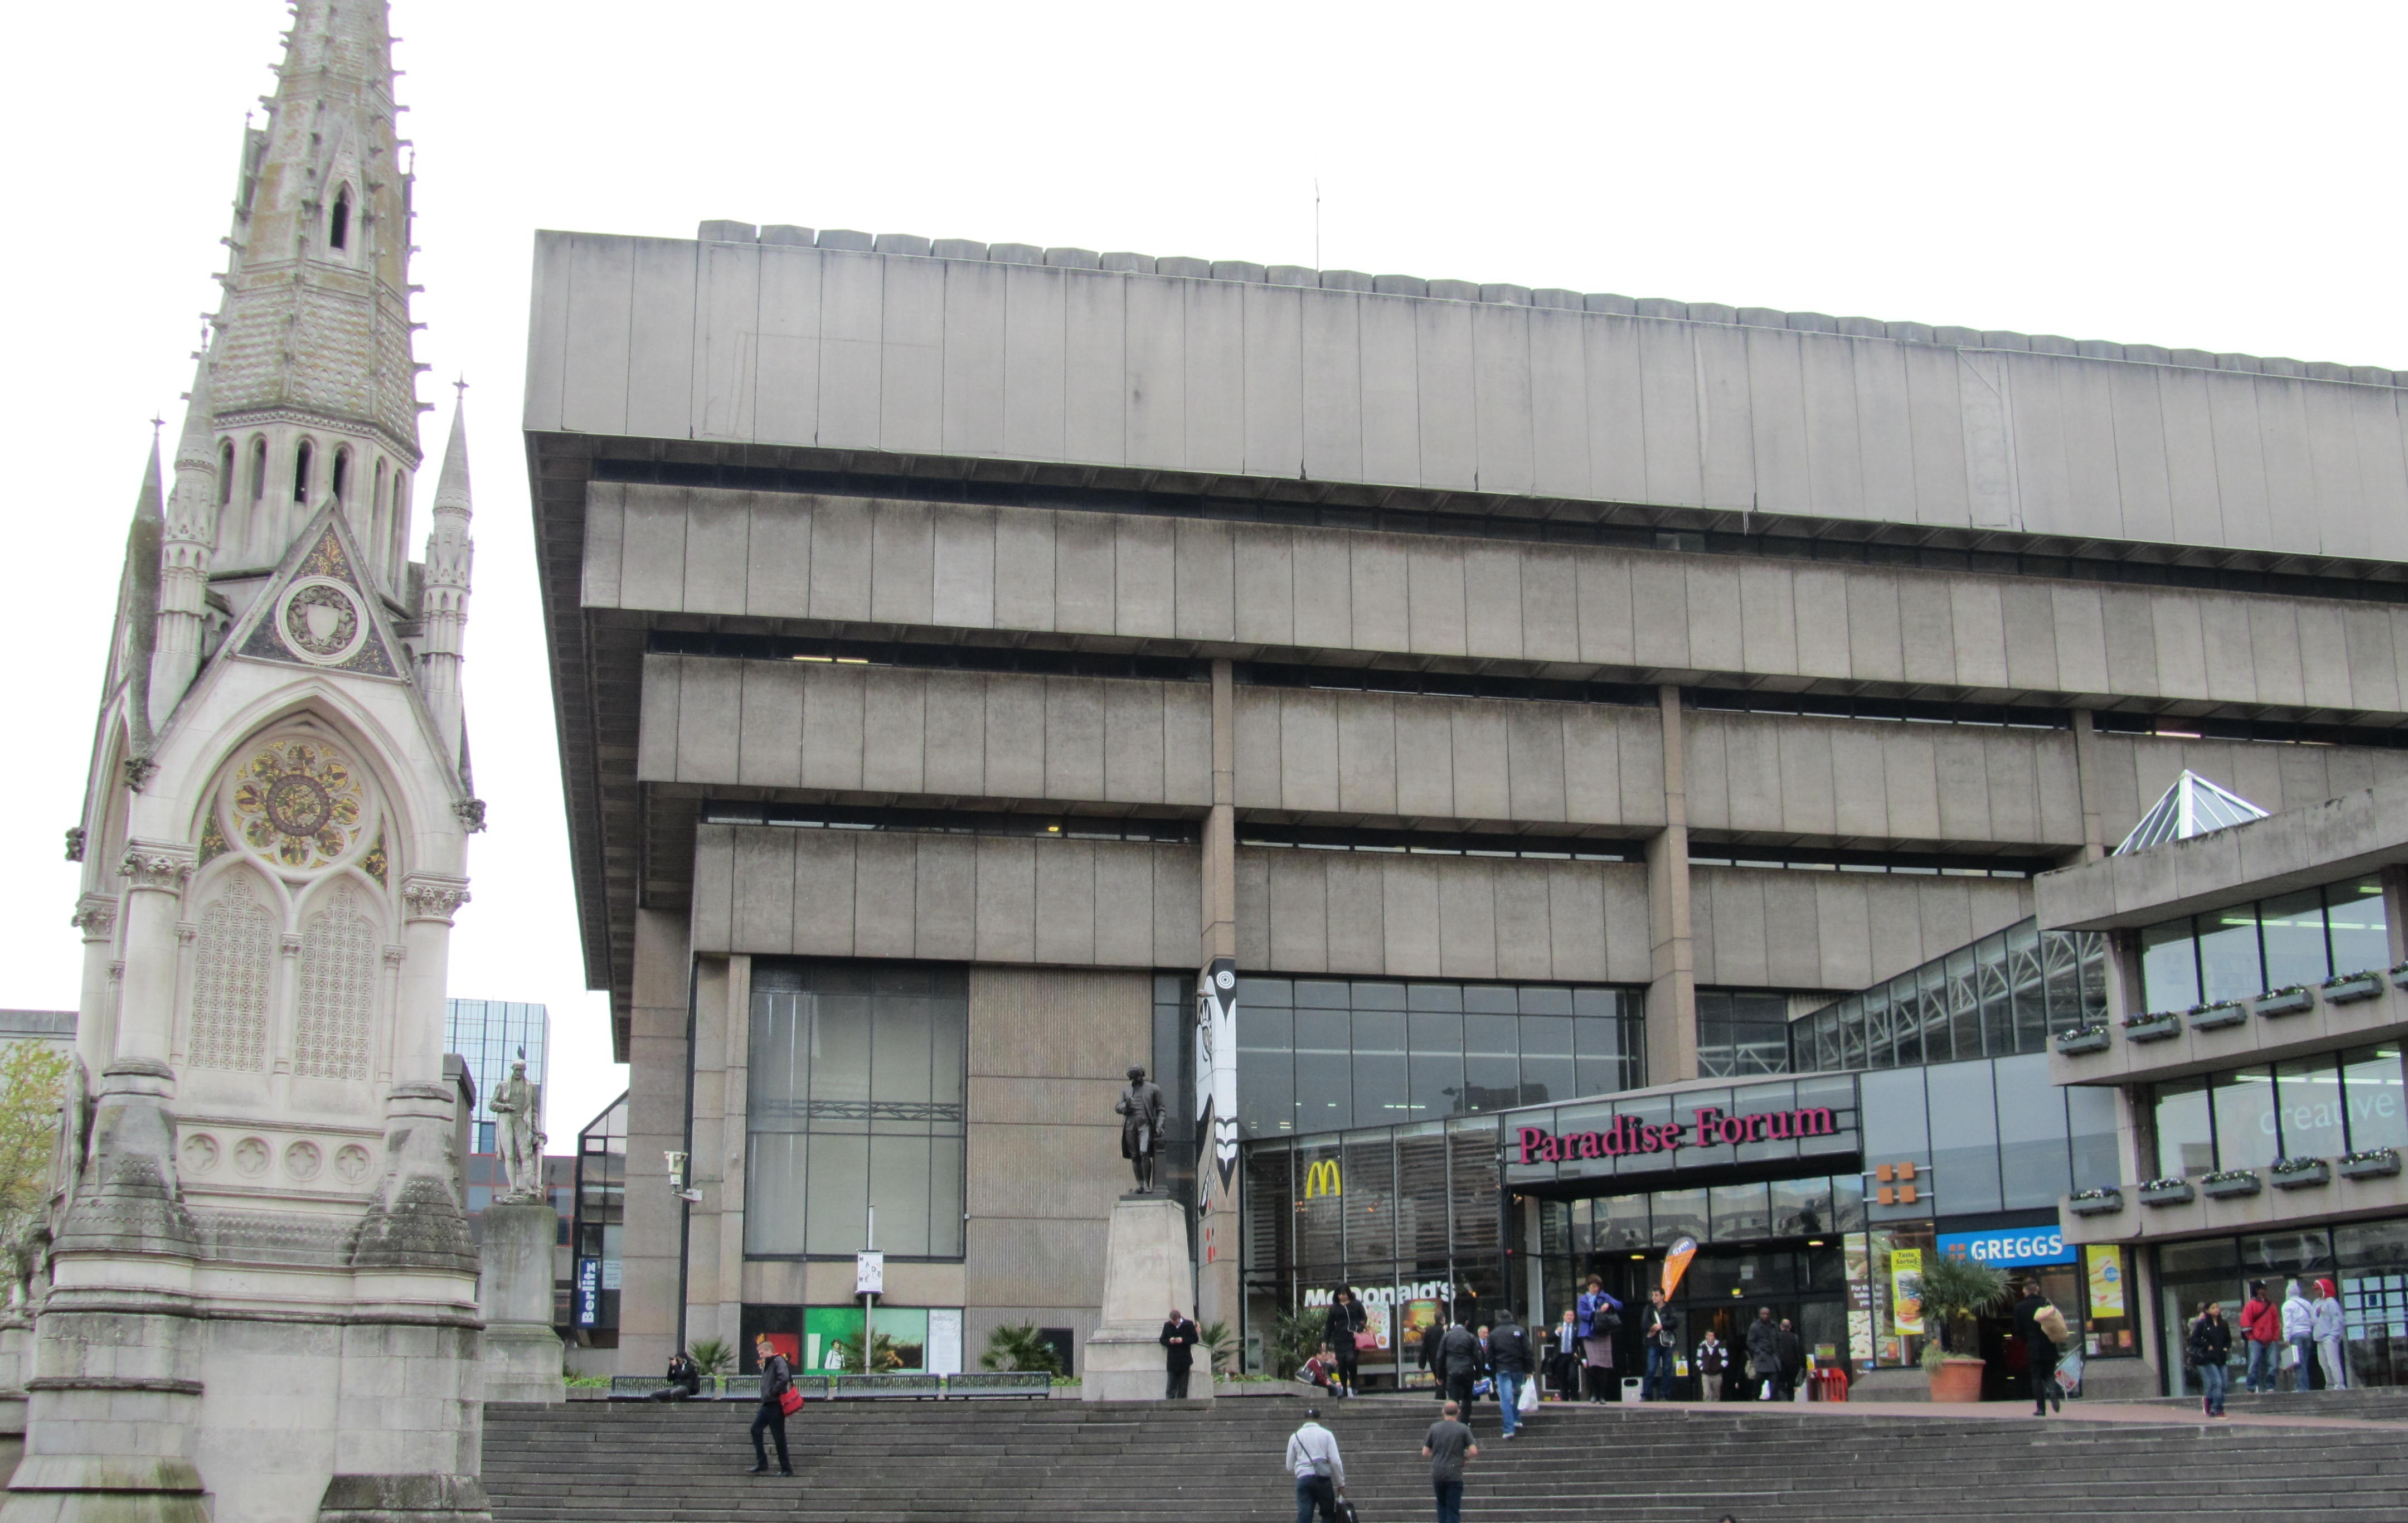 House Plans Magazine Birmingham Central Library The Twentieth Century Society